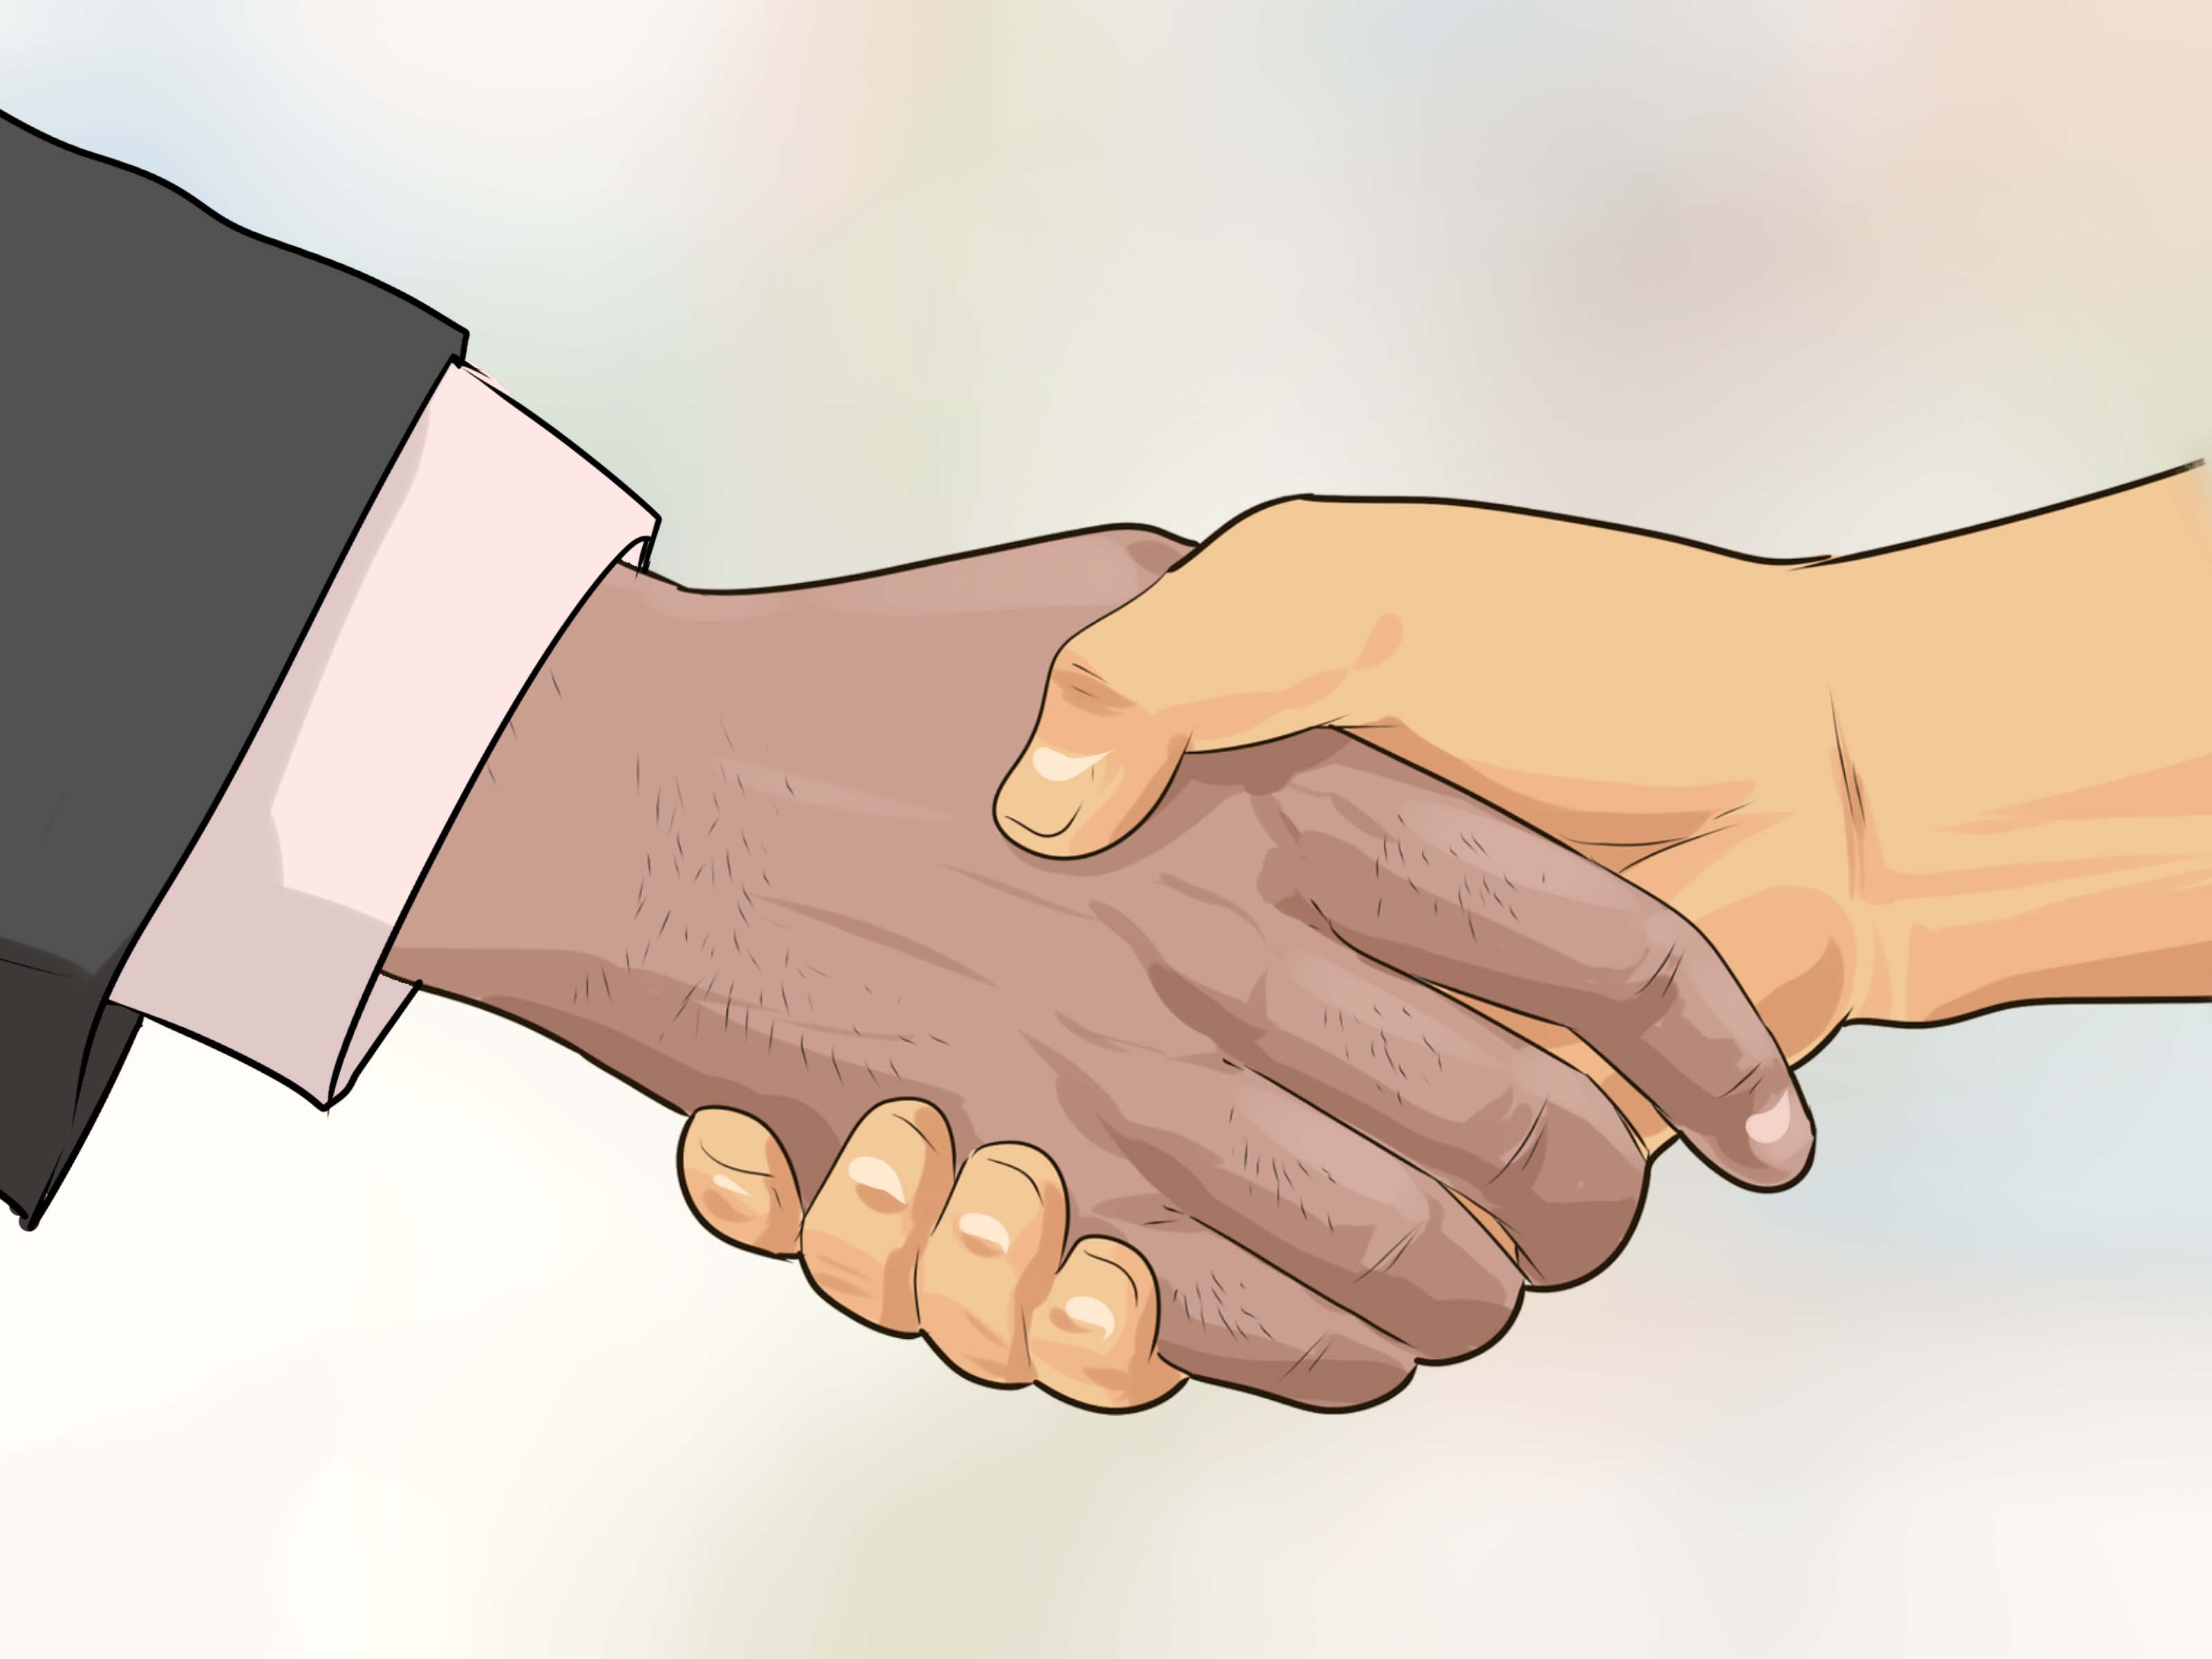 How to hire a detective for a cheating spouse